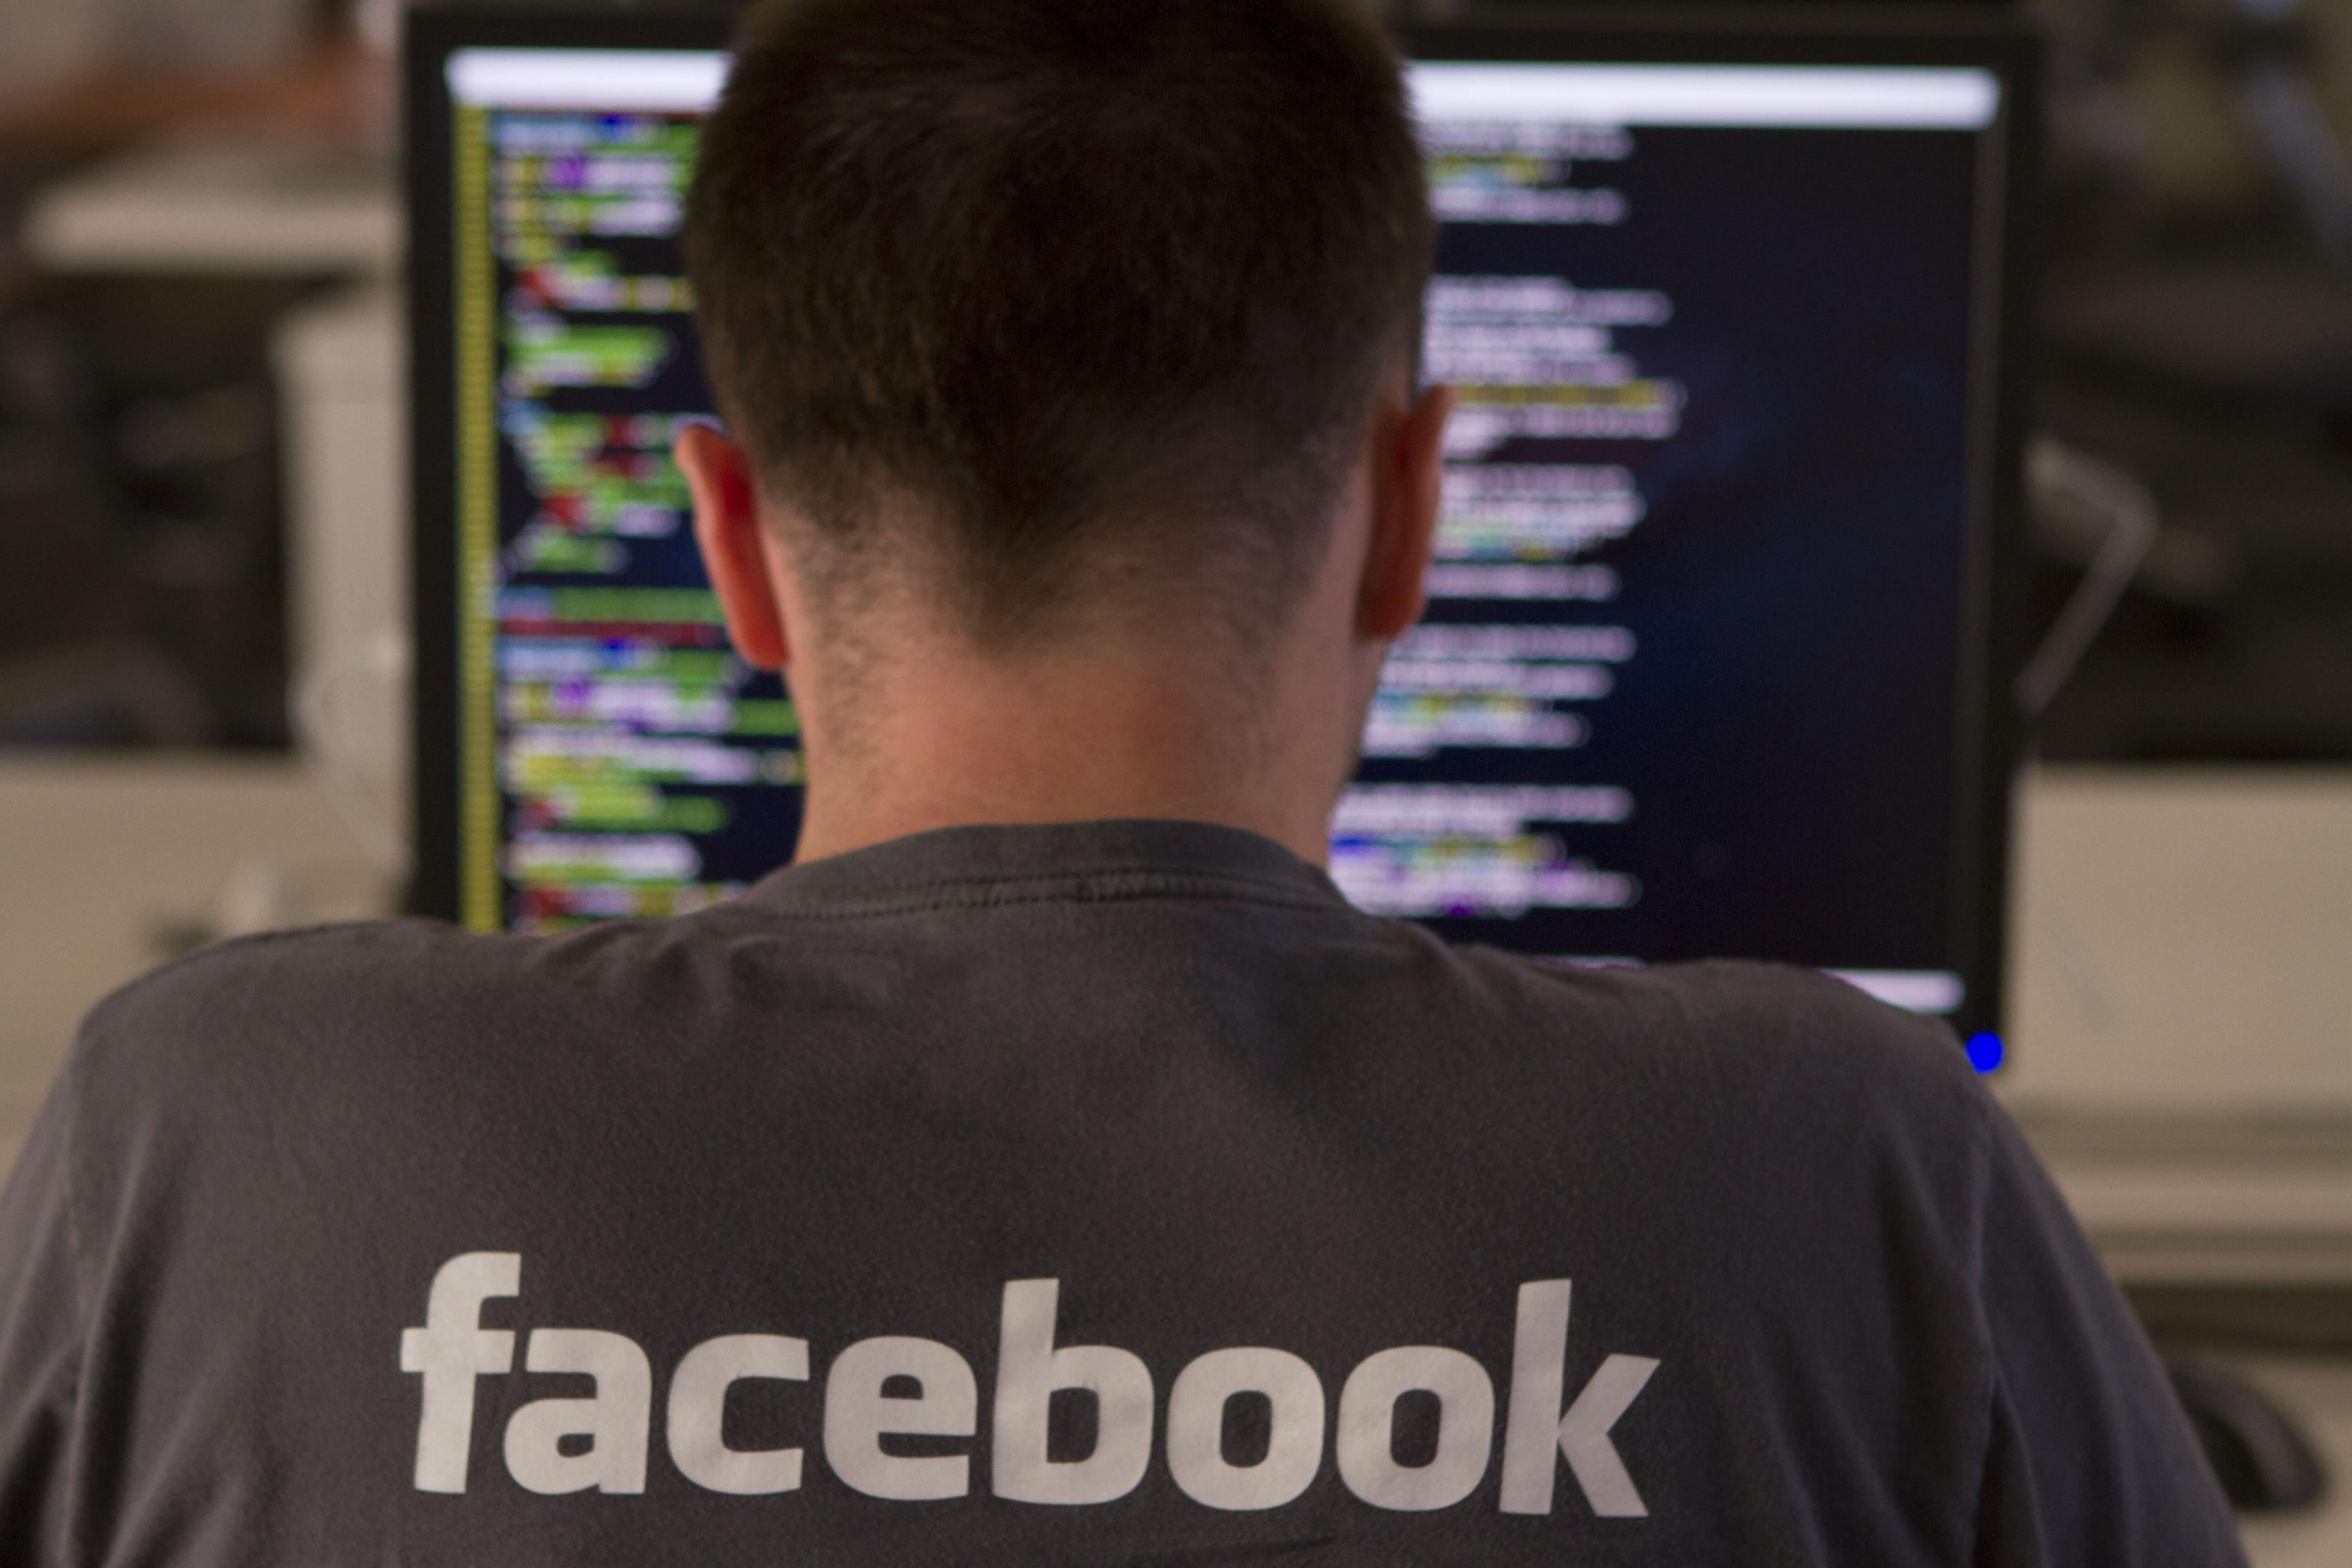 Almost Half a Billion Facebook Users Have Phone Numbers Exposed